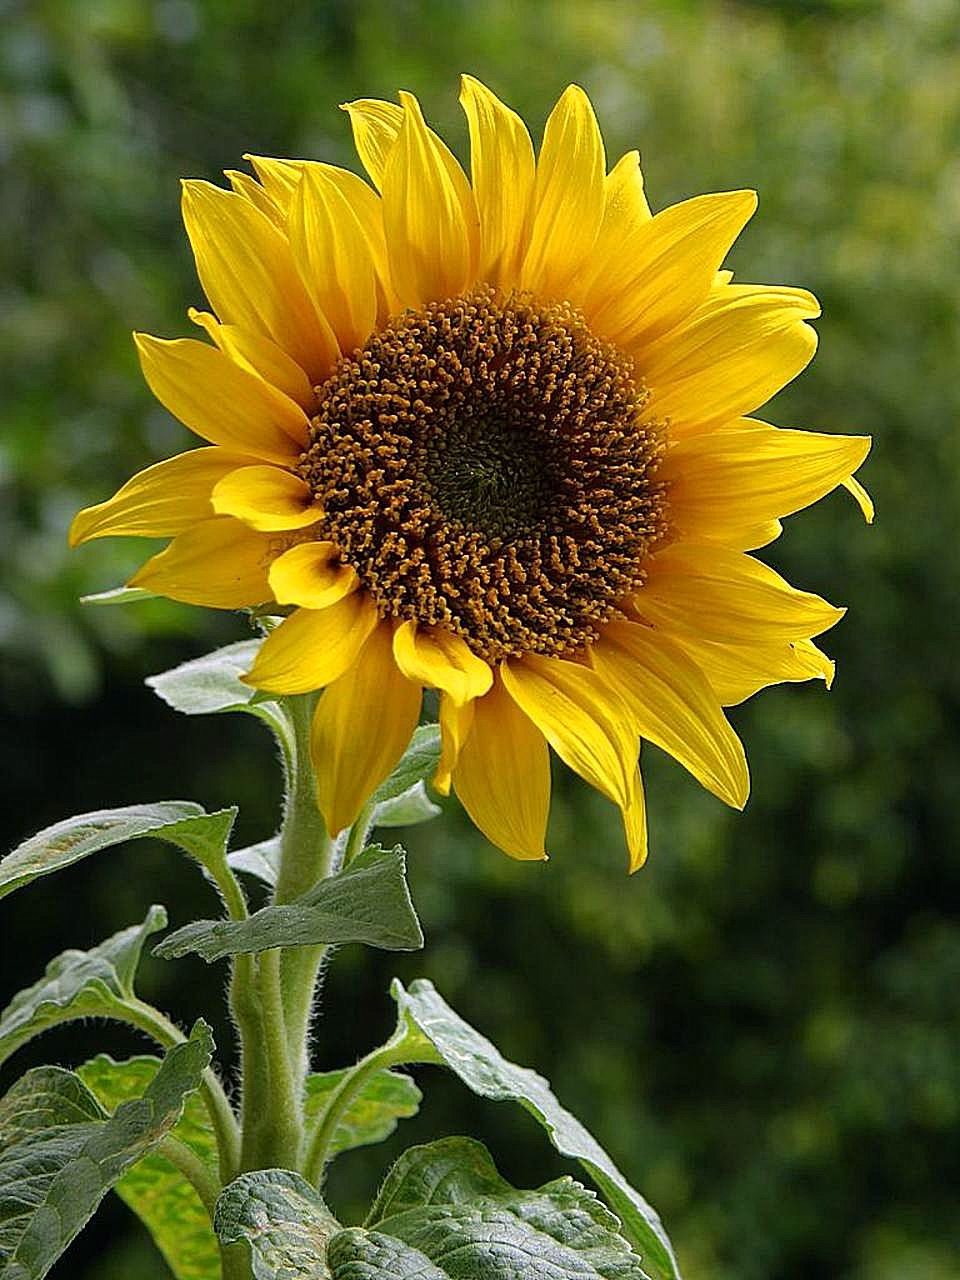 sun flowers and flower - photo #37